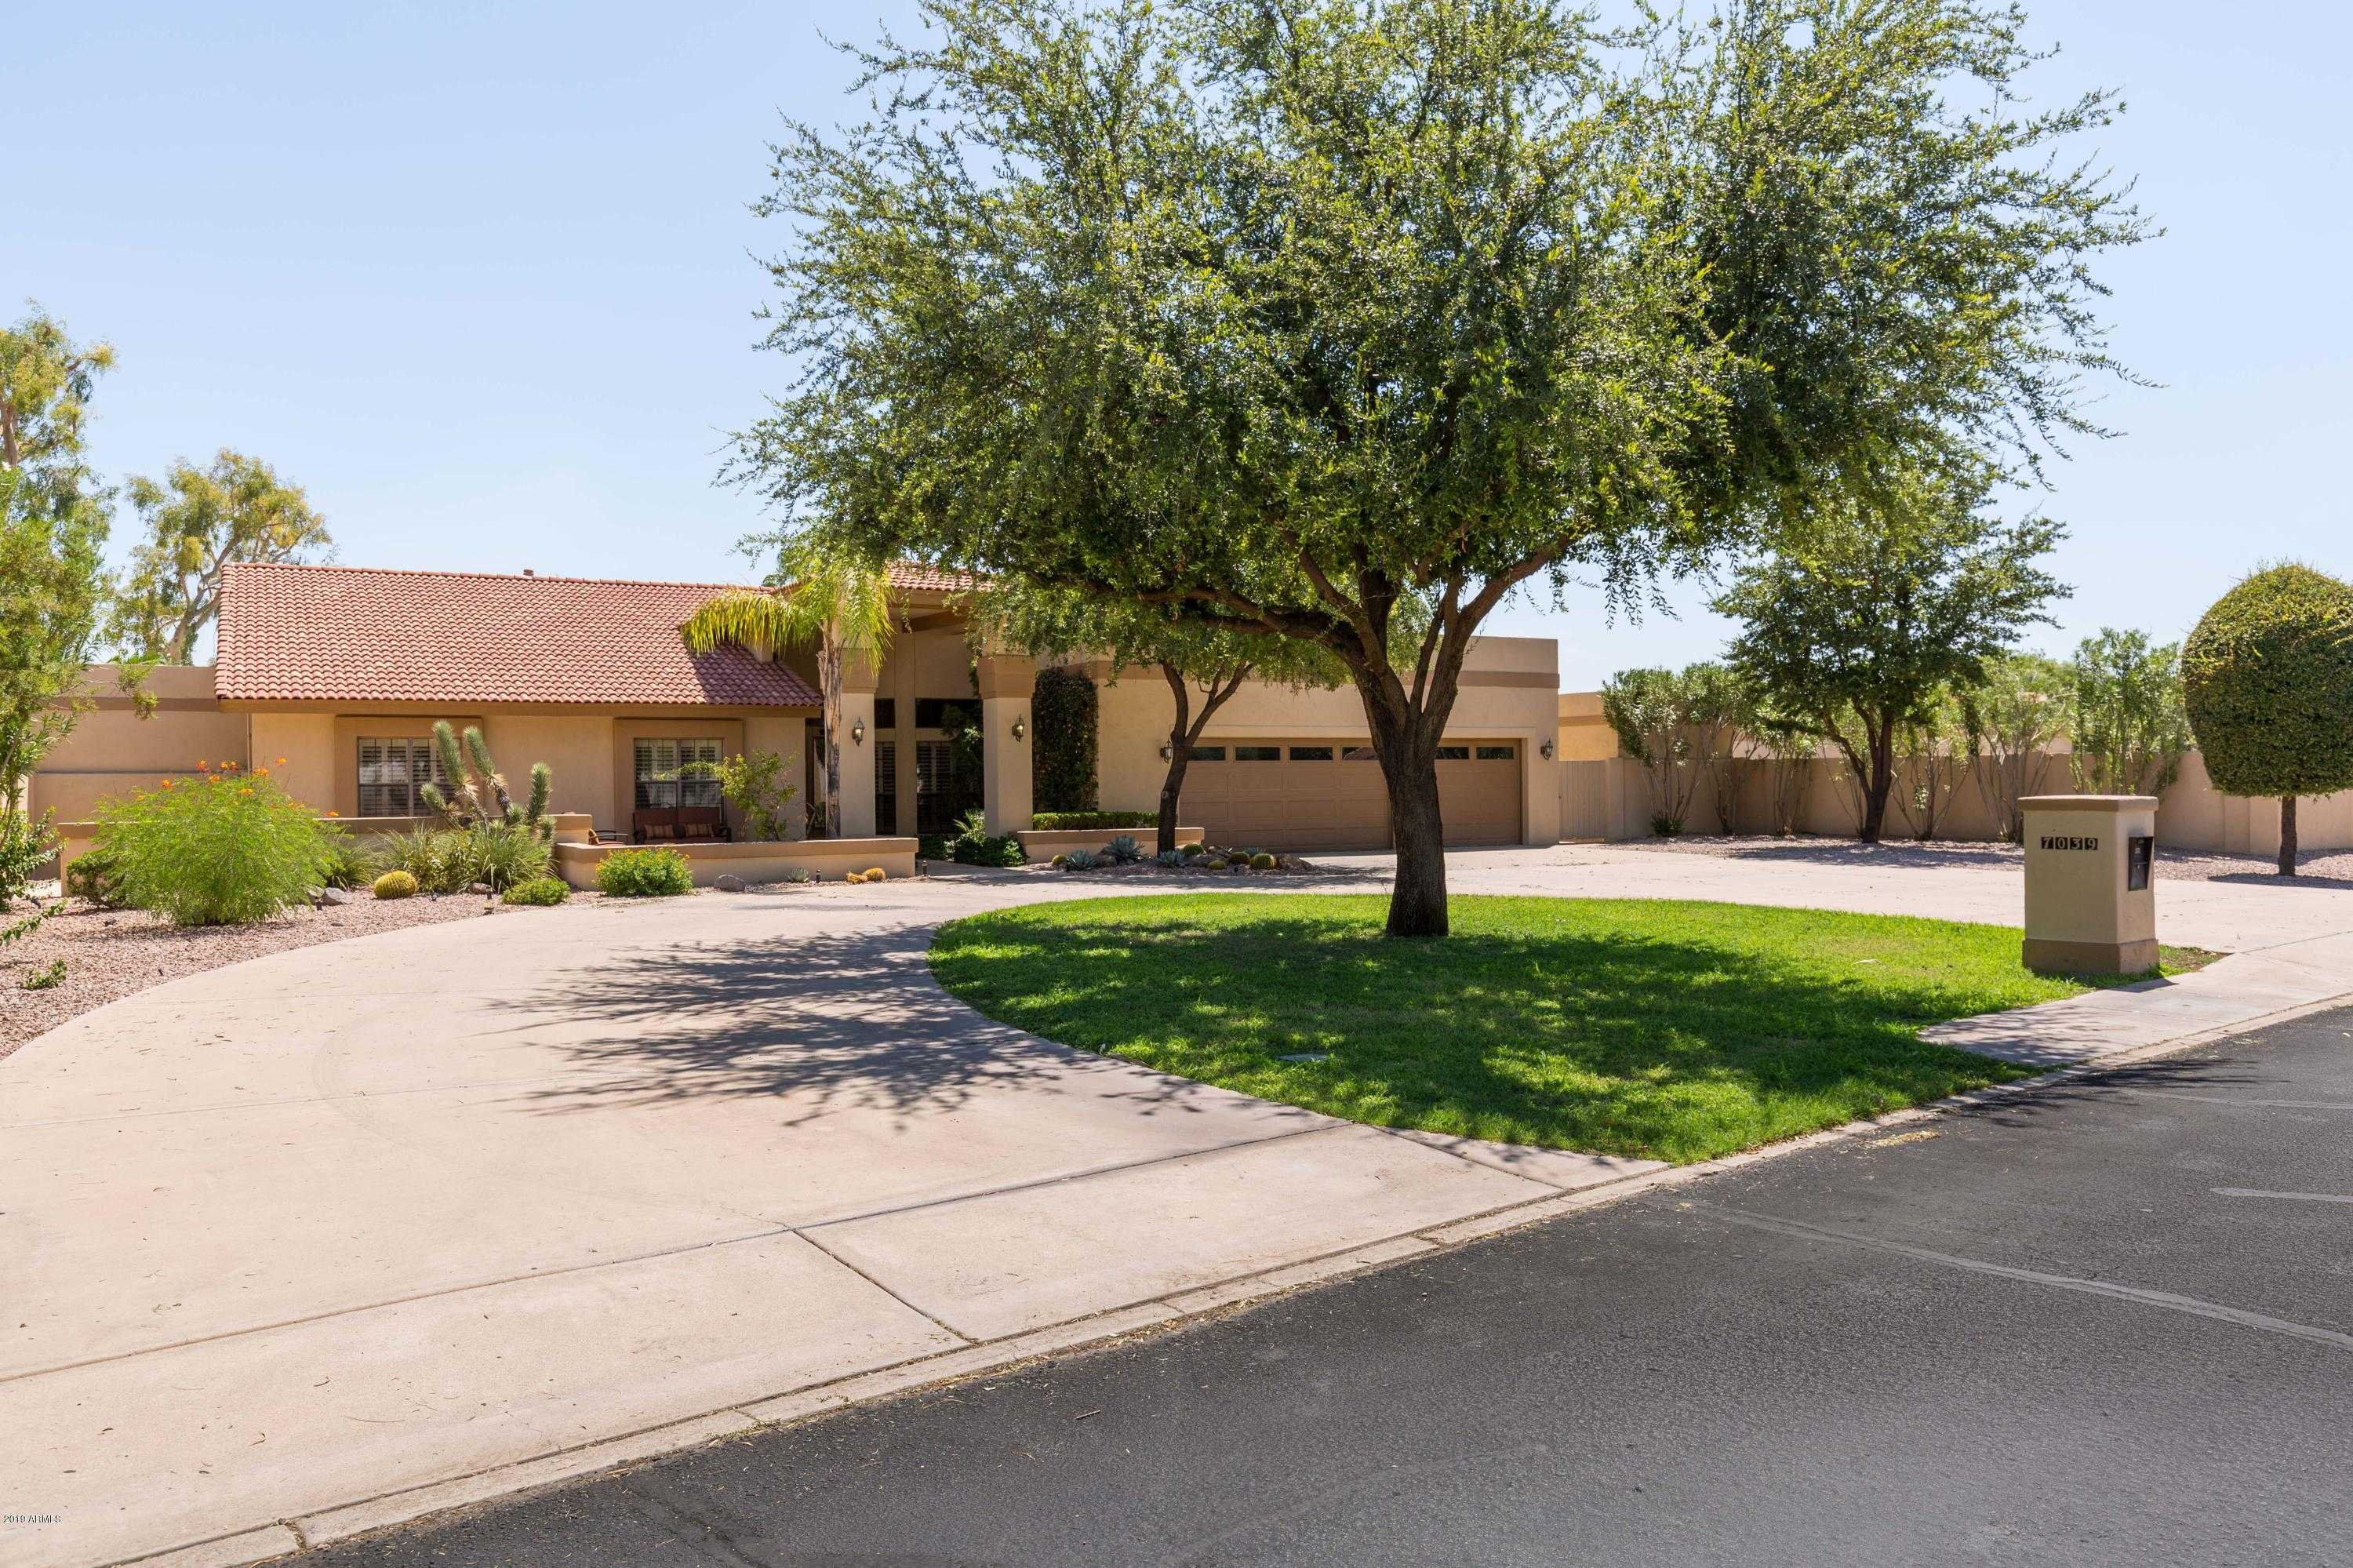 $1,275,000 - 4Br/3Ba - Home for Sale in Fanfol Manor, Paradise Valley